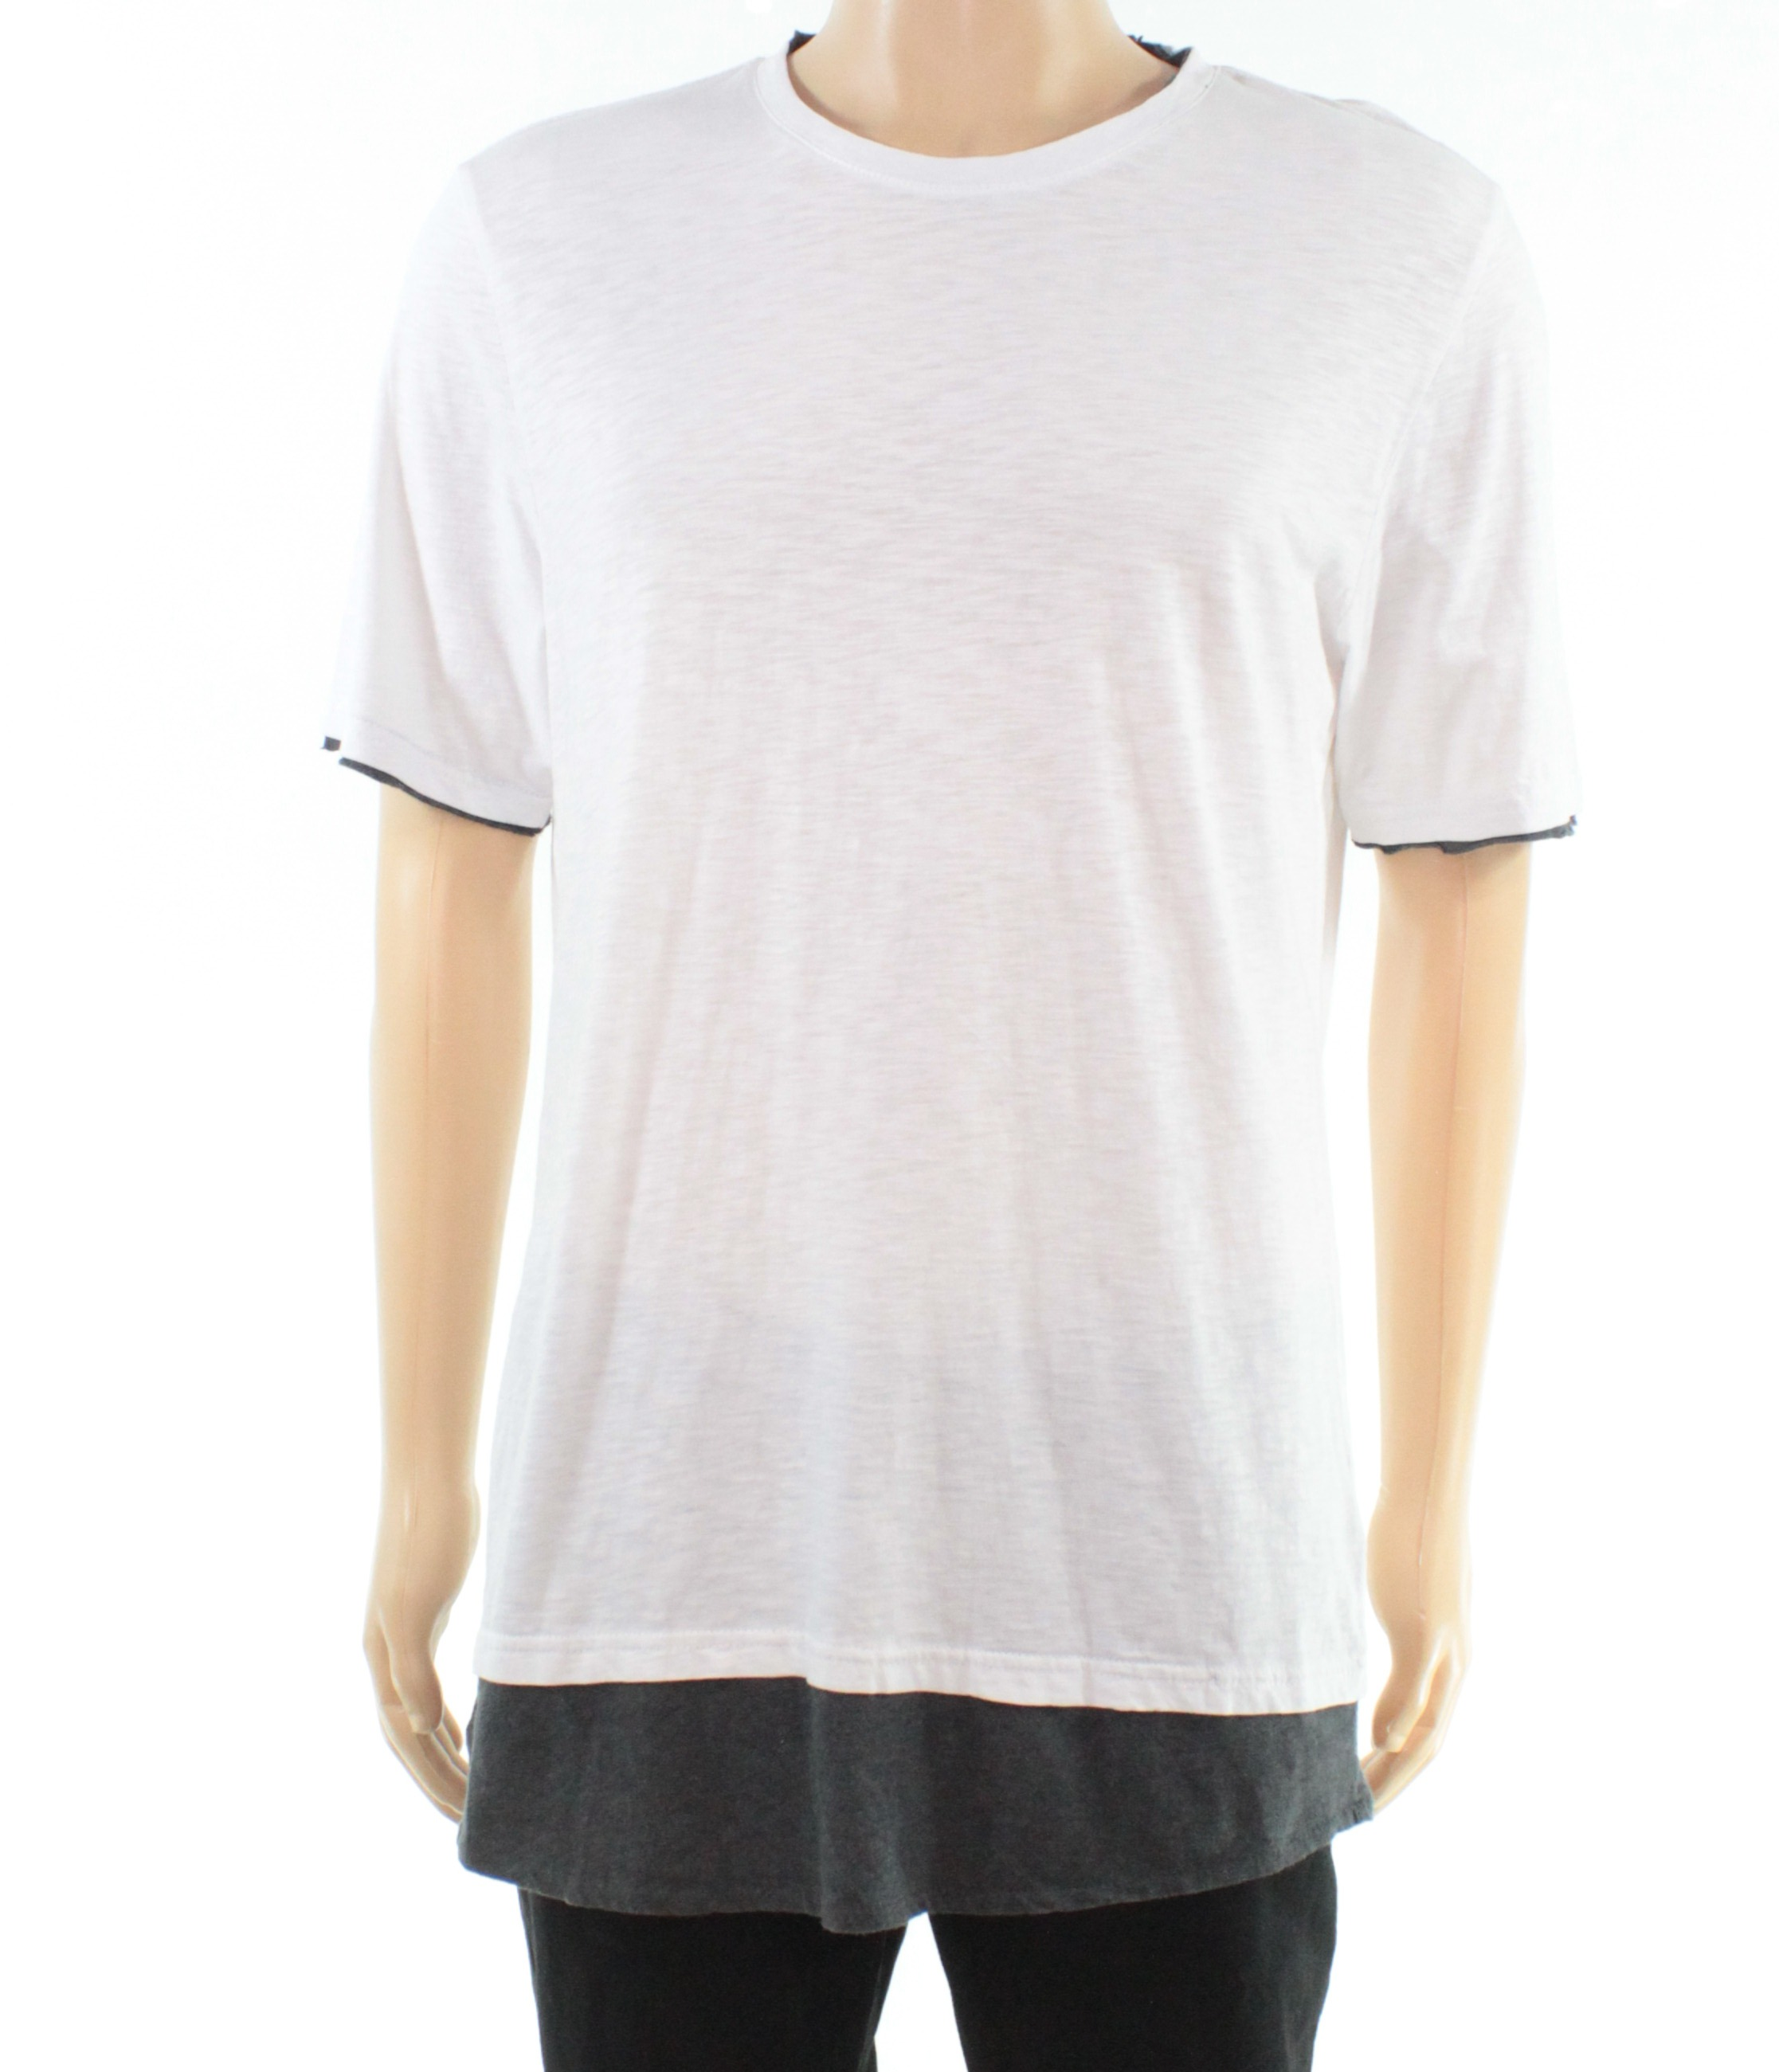 INC-Mens-Shirt-White-Gray-Size-Large-L-Longer-Length-Crewneck-Tee